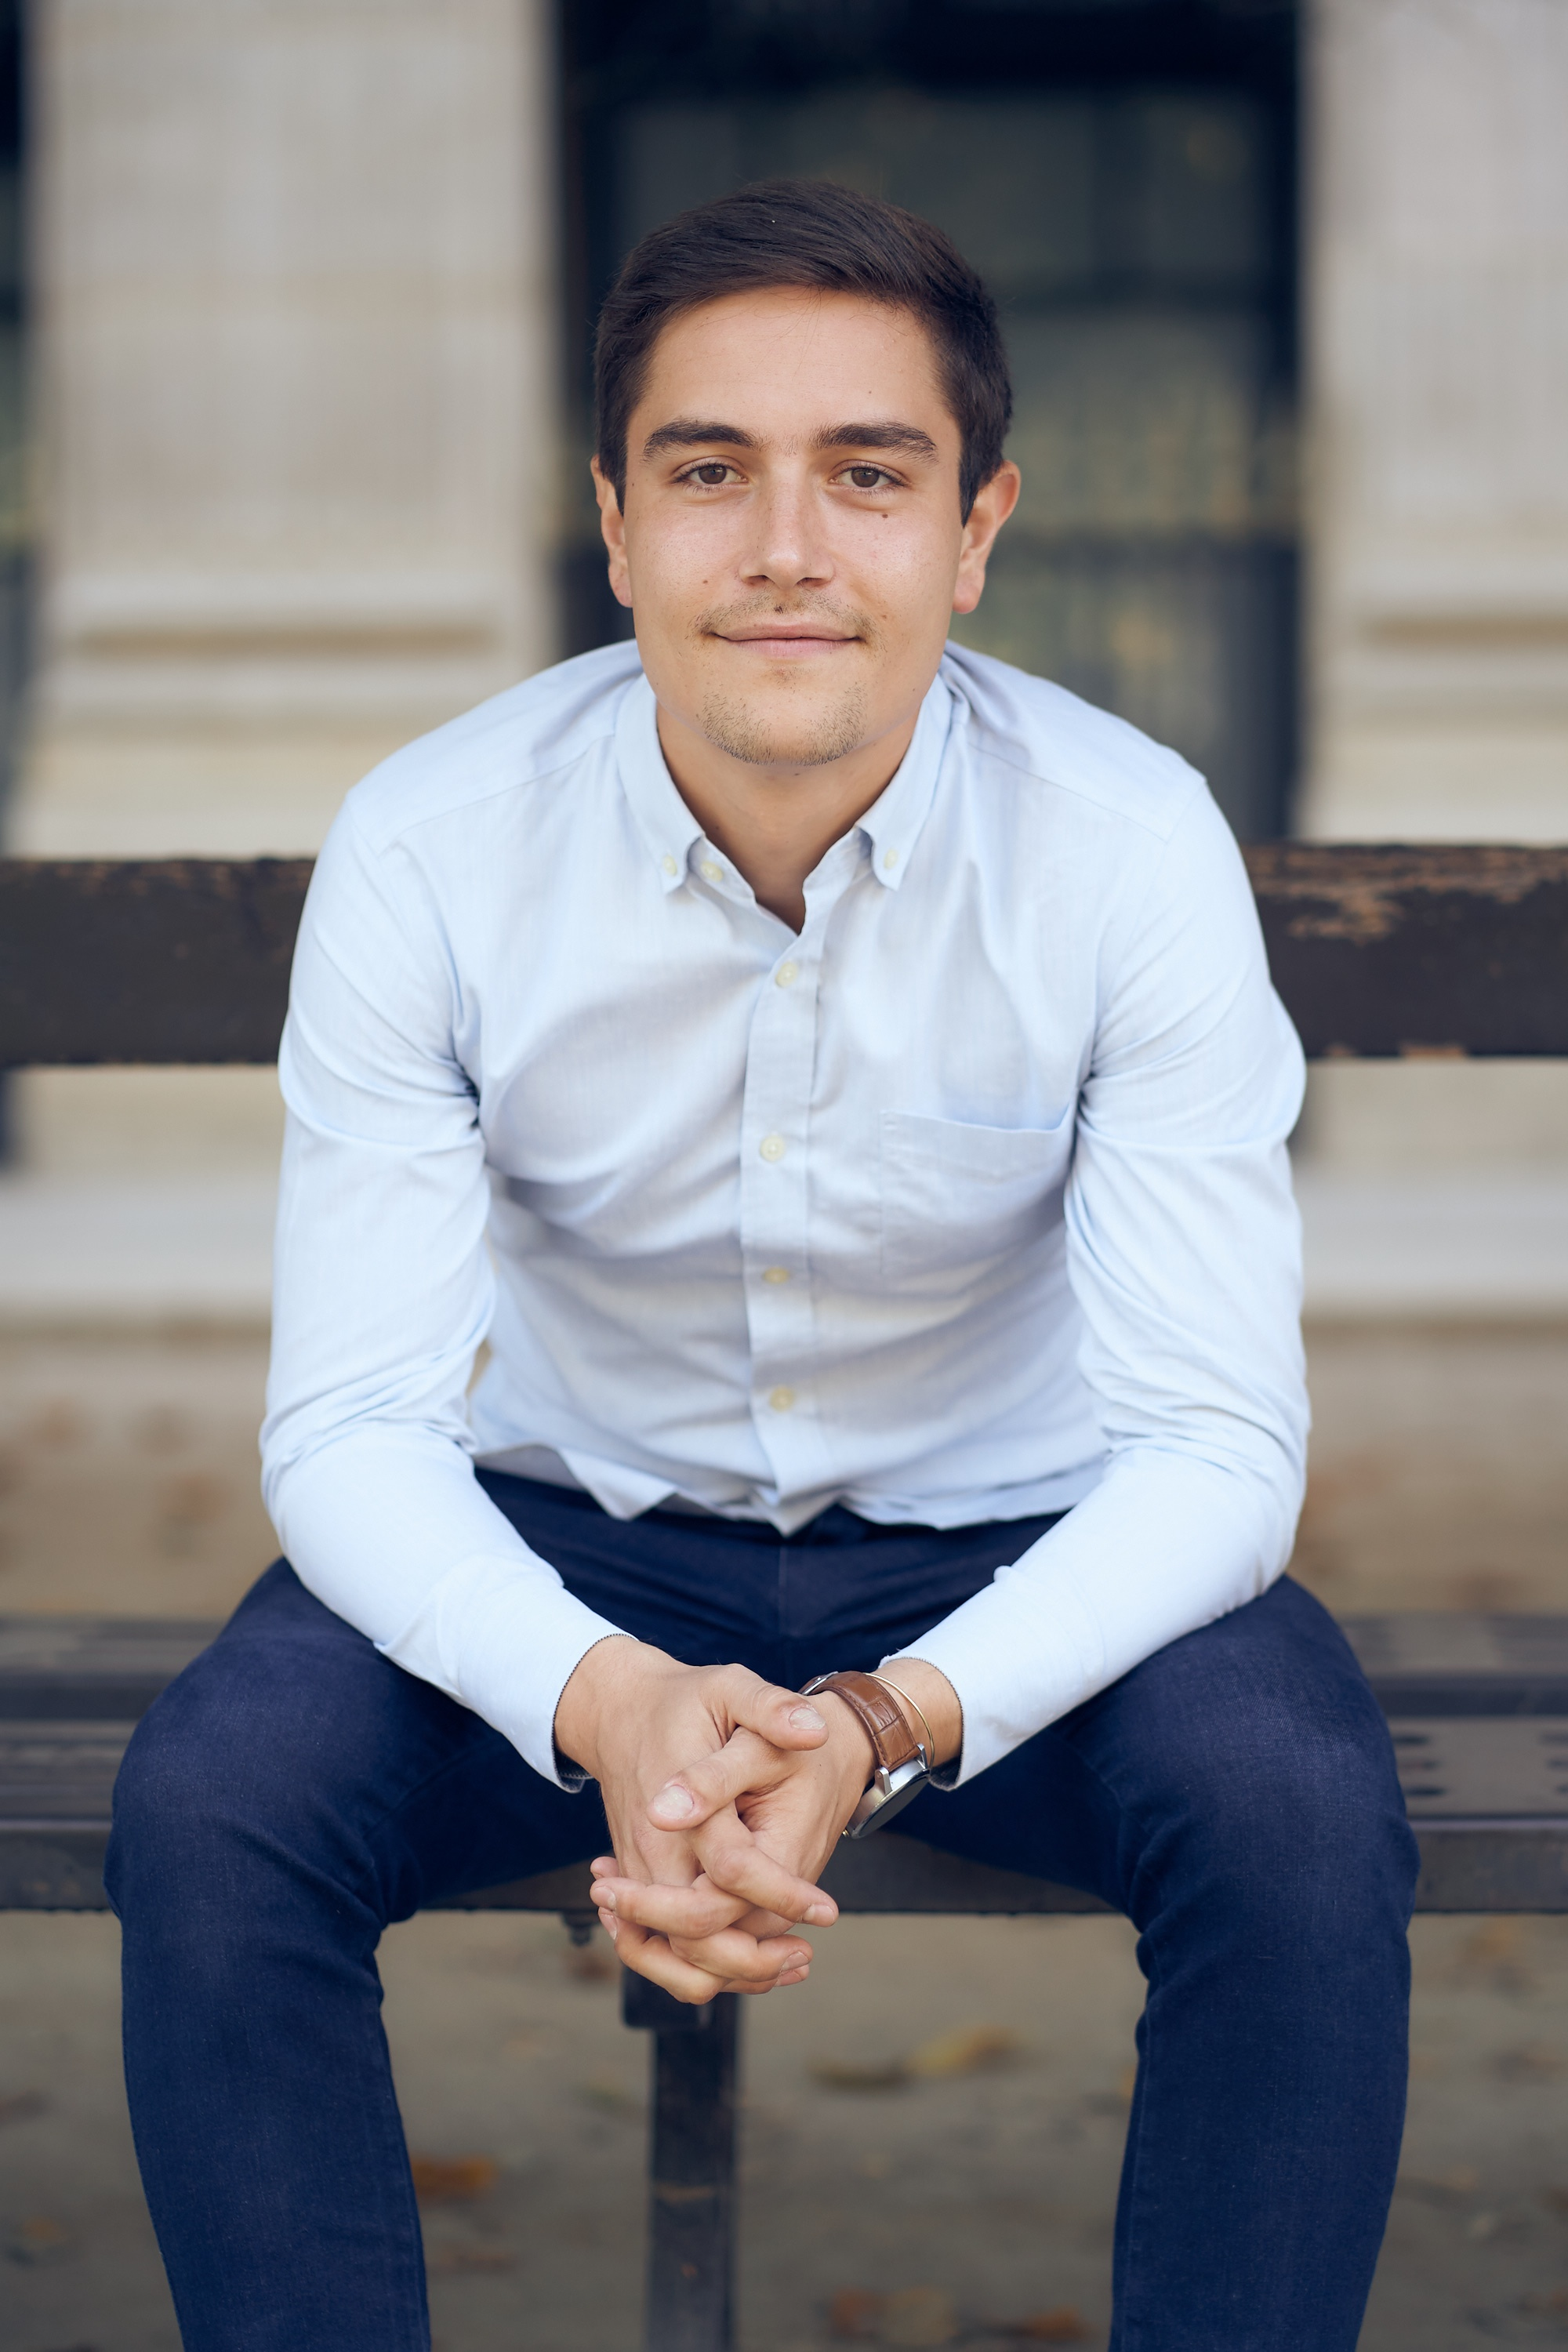 Nicolo Brentan - Head of Sales, MakeMeReach